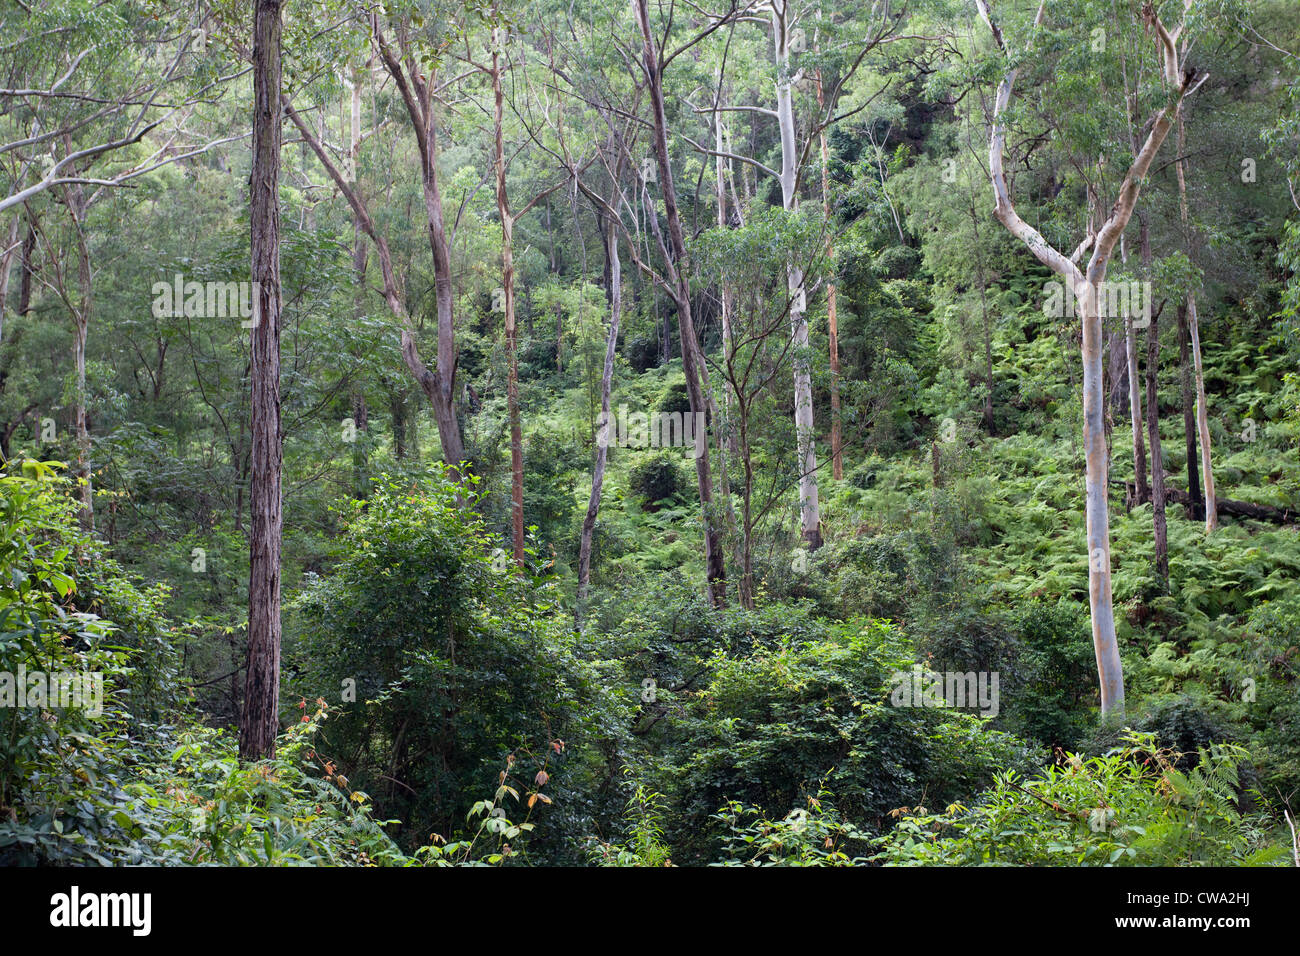 Wet Eucalypt Forest, Dharug National Park, NSW Australia - Stock Image